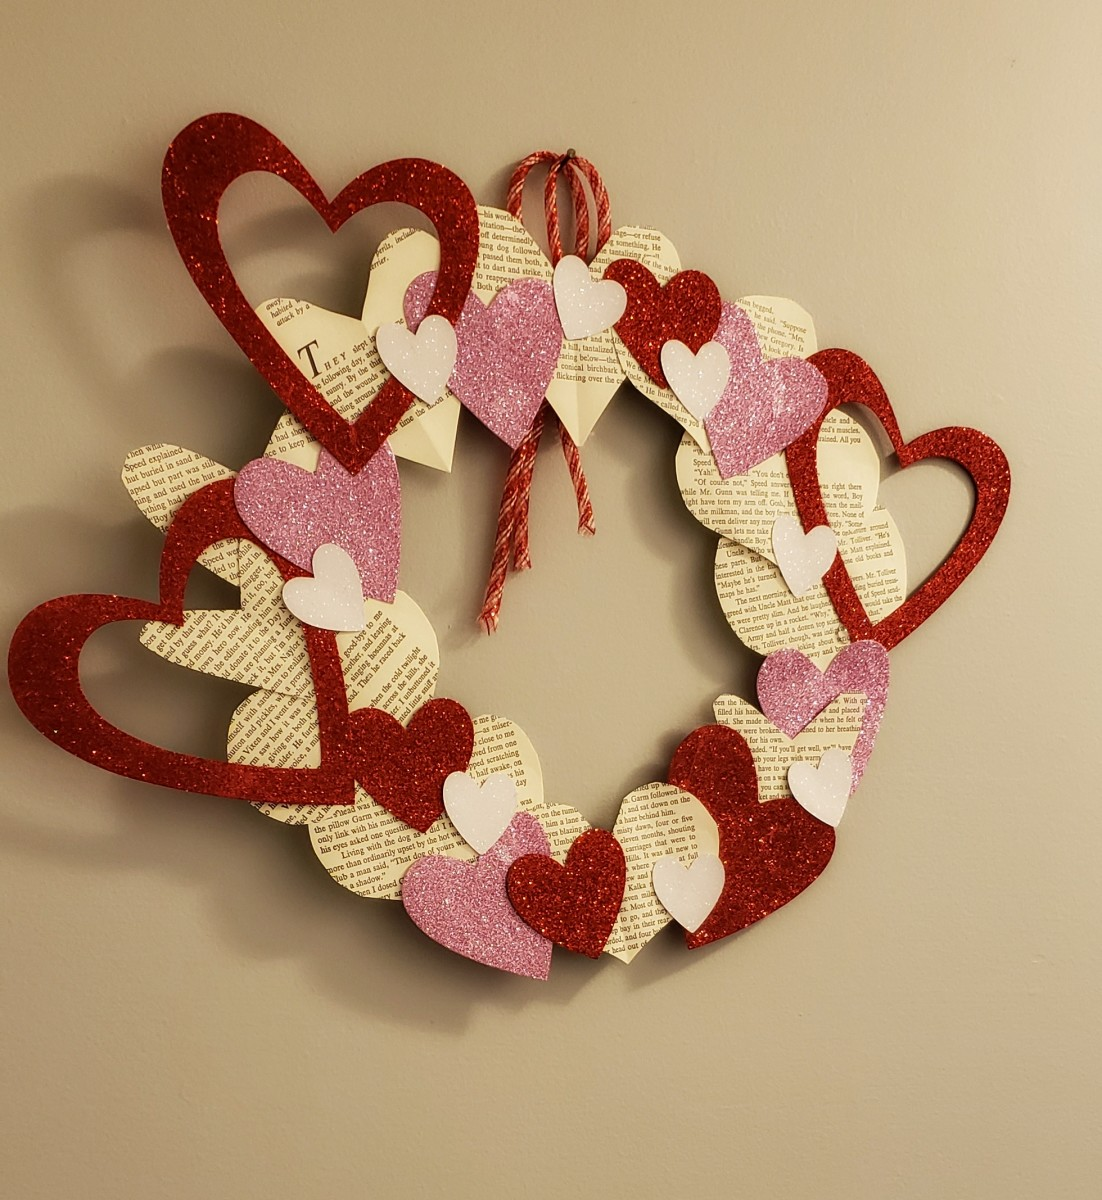 These three Valentine's Day wreaths can be made with craft supplies and just a few simple household items.